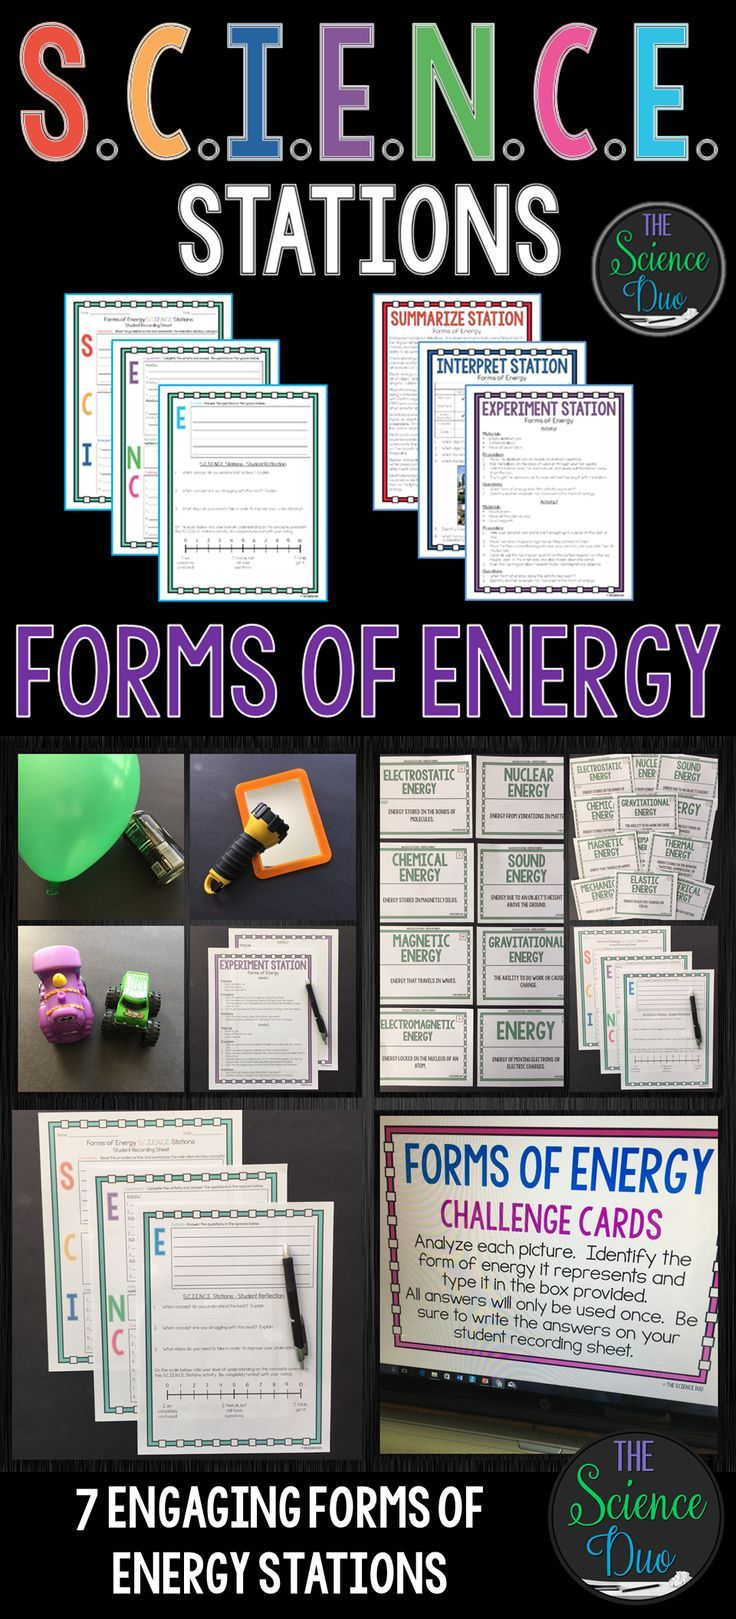 This Forms of Energy S.C.I.E.N.C.E. Station activity is designed to get your students engaged, collaborating, and moving in your daily lesson. Each station provides a different method for reinforcing important science content.